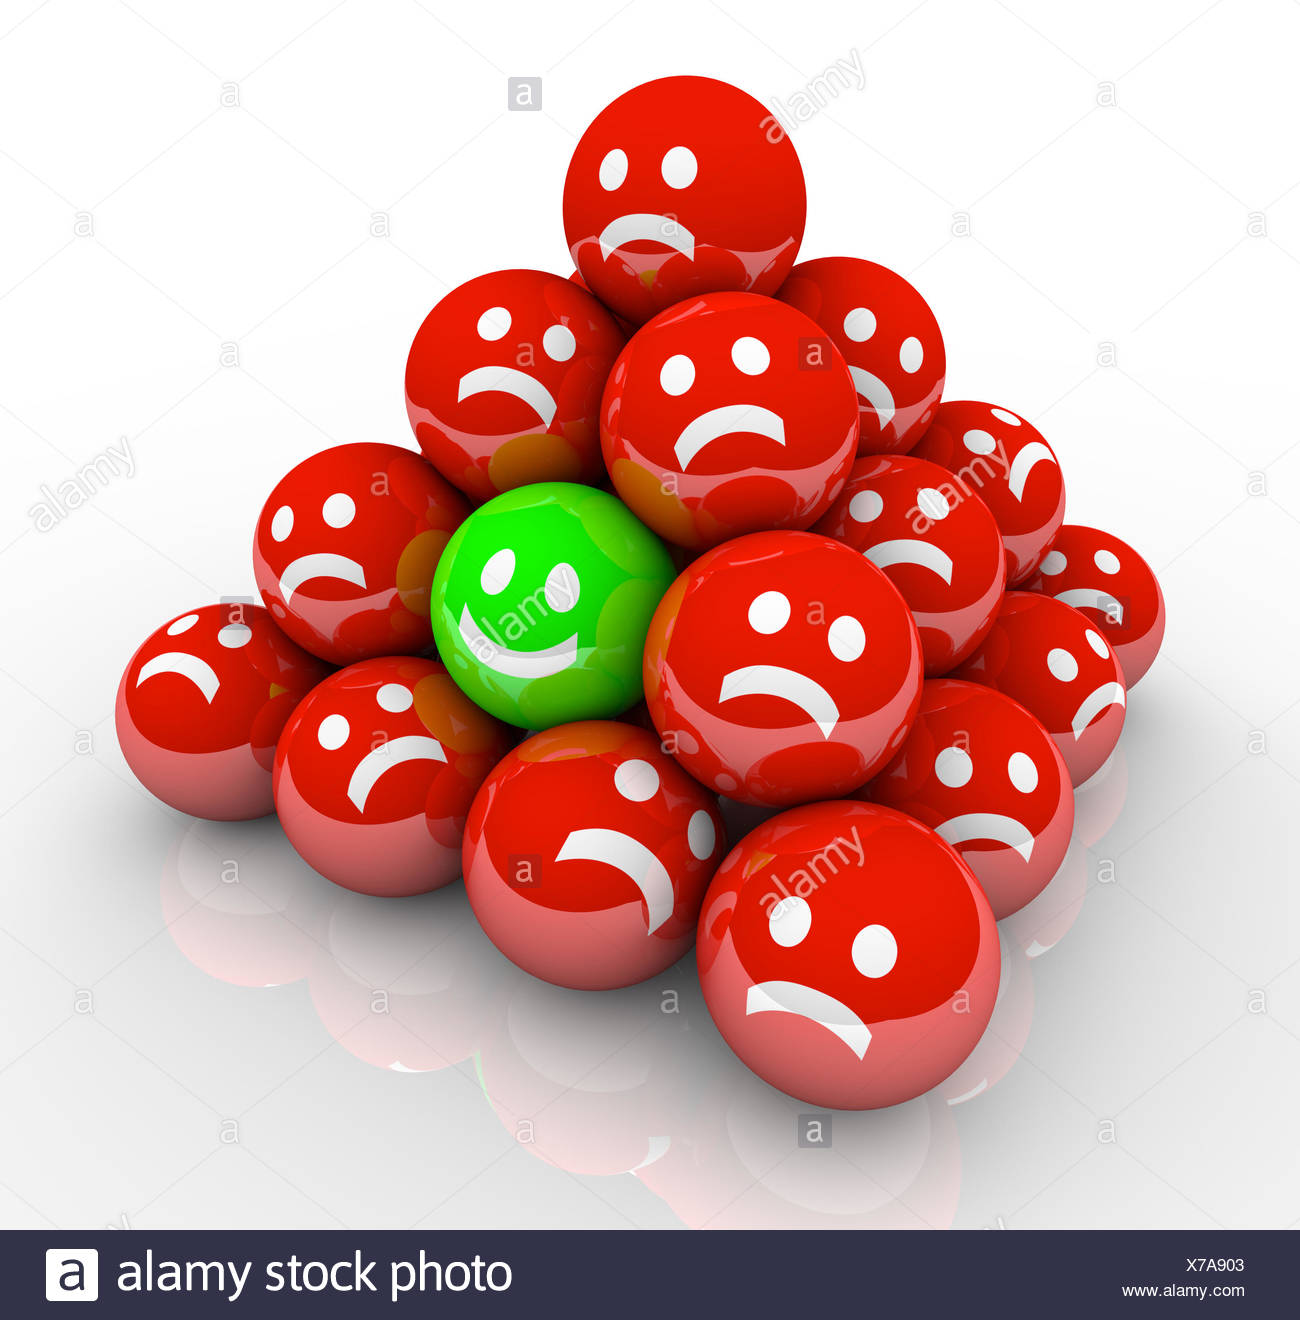 Happy Smile Face in Ball Pyramid of Sad Faces - Stock Image